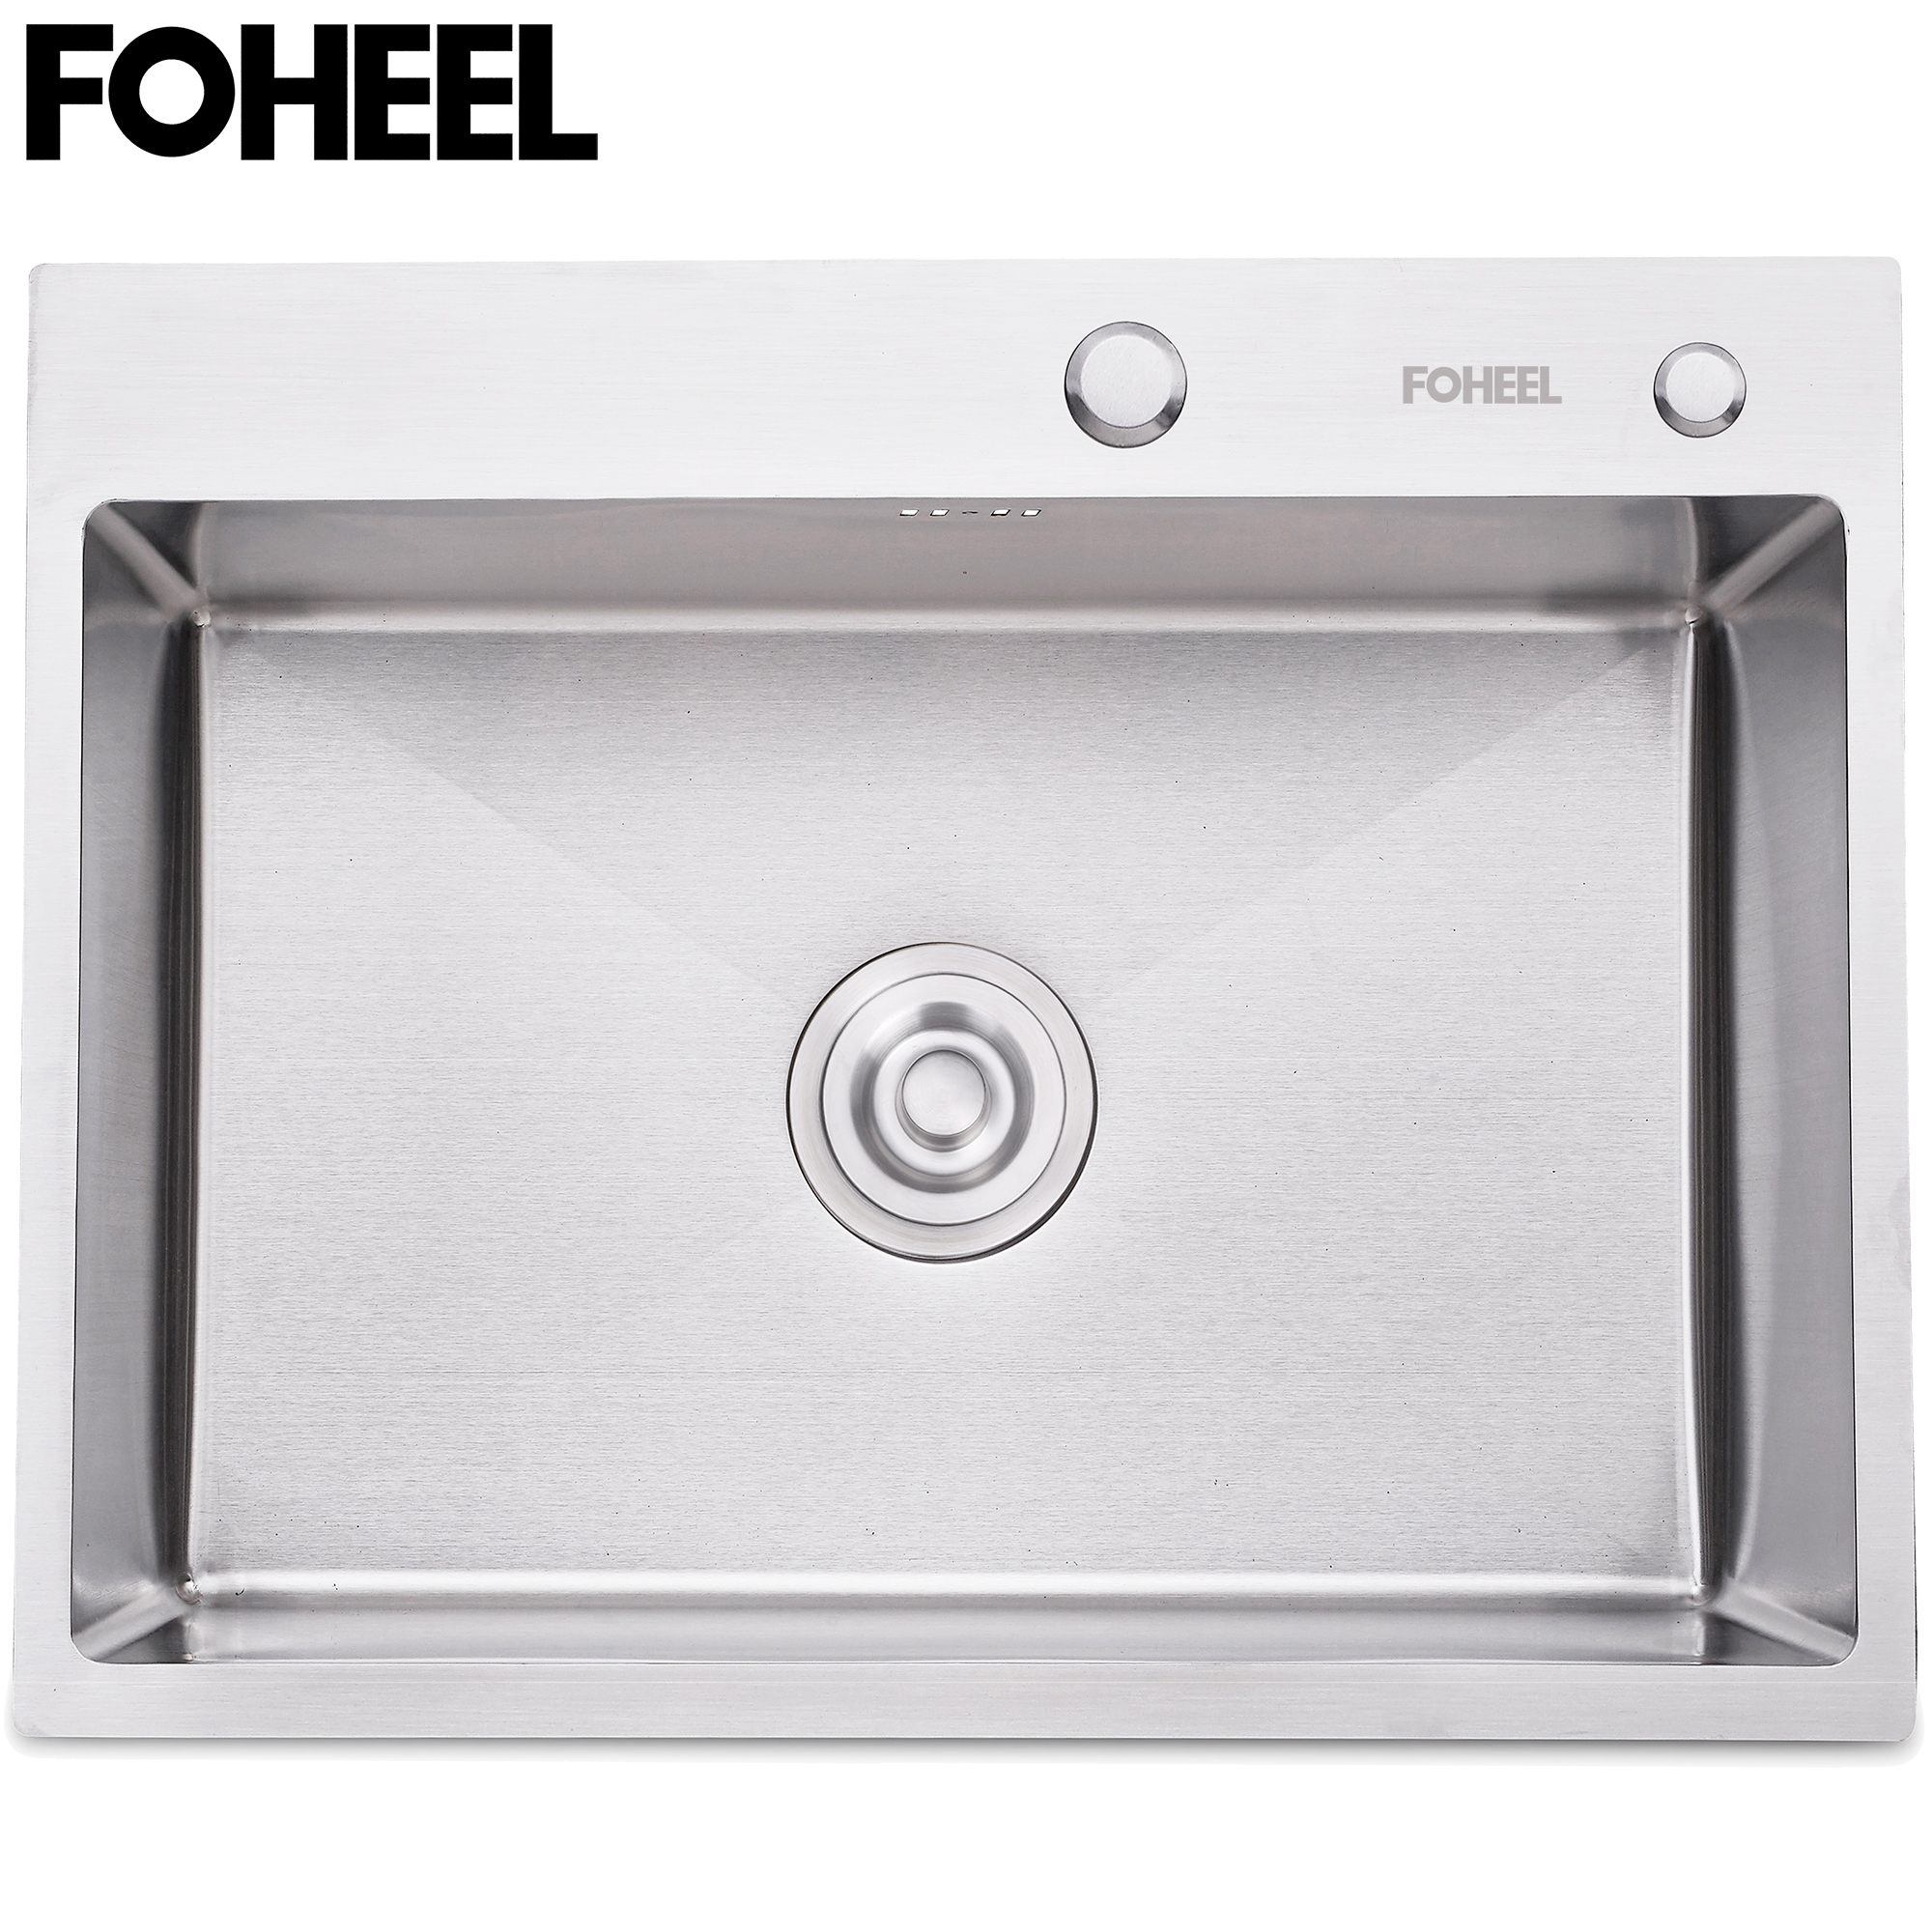 FOHEEL Stainless Steel Kitchen Sink  Slot Dish Basin Kitchen Sink Drain Basket And Drain Pip Rectangular